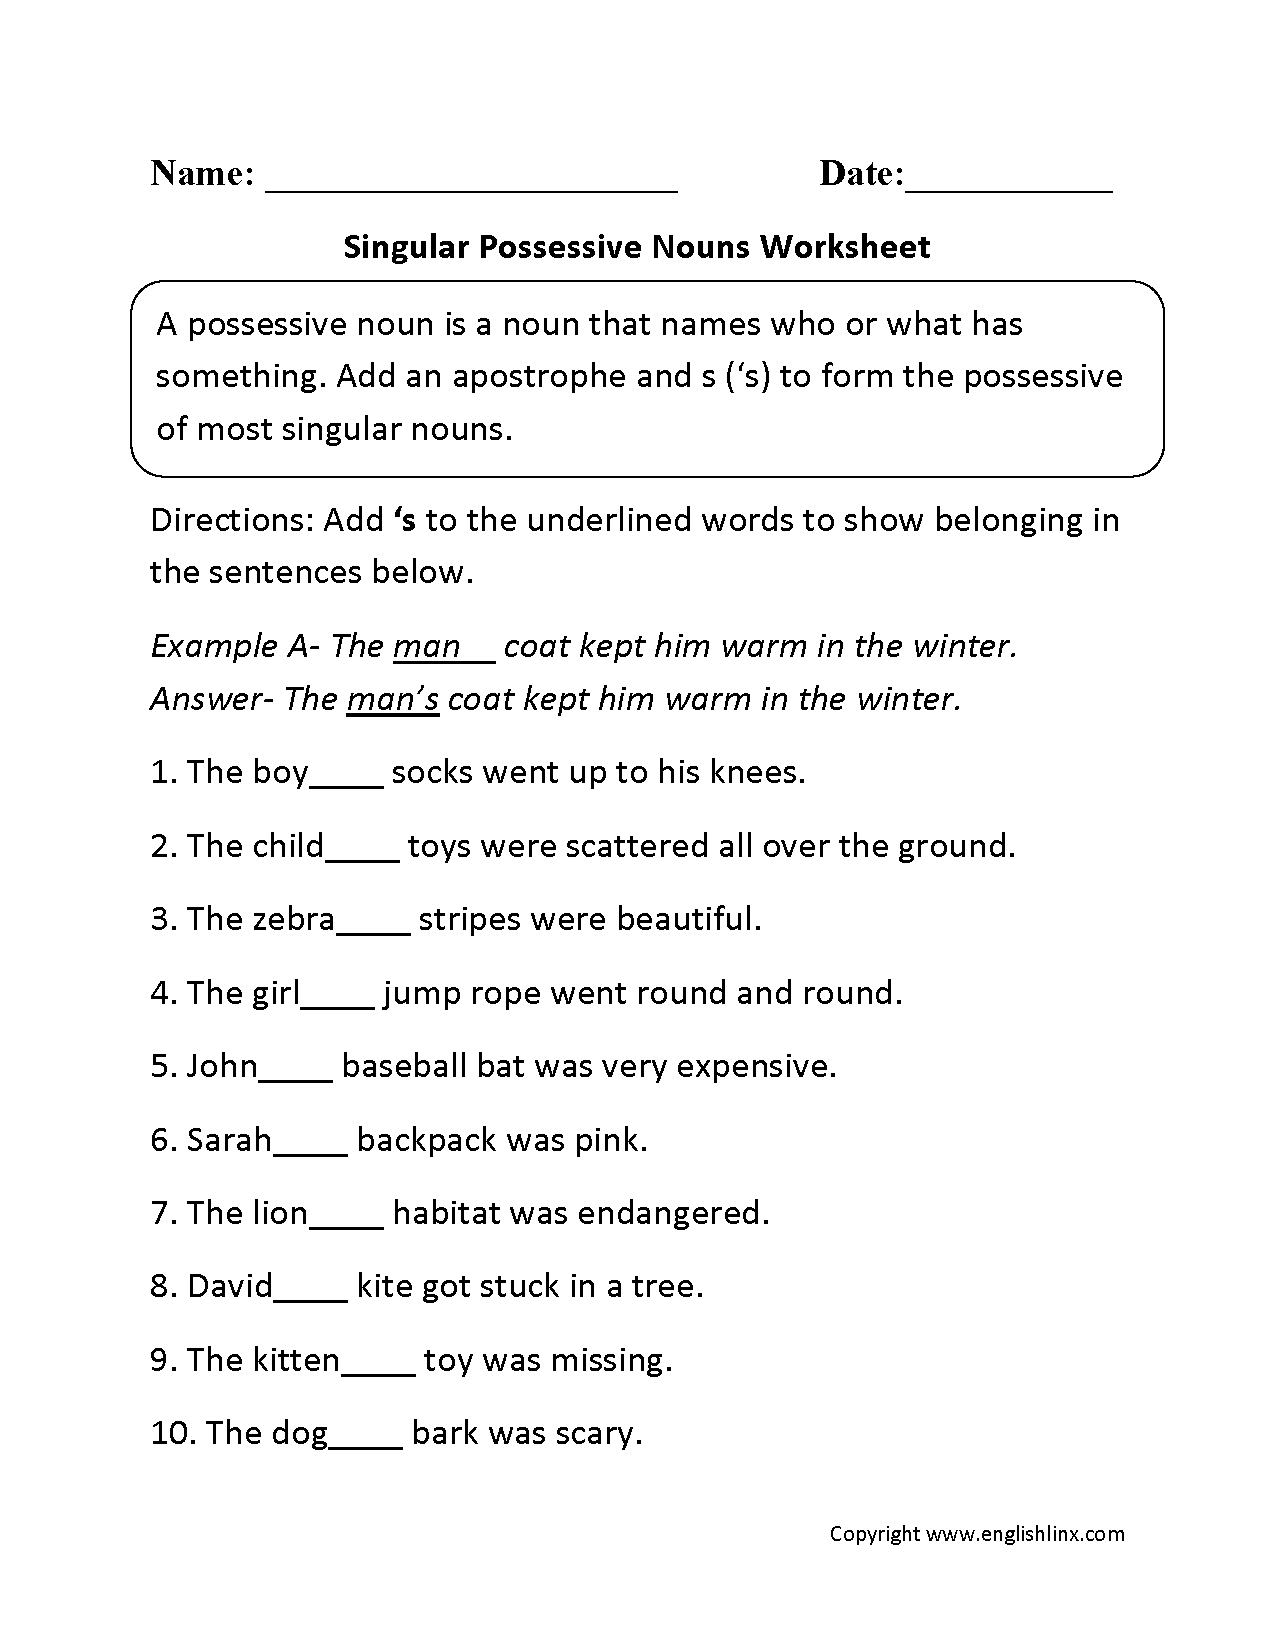 Aldiablosus  Pleasing Nouns Worksheets  Possessive Nouns Worksheets With Handsome Possessive Nouns Worksheets With Alluring Times Table Worksheets To Print Also Find The Shape Worksheet In Addition Adverbs Worksheet Grade  And Drought Worksheets As Well As Double Worksheet Additionally Simple Cause And Effect Worksheets From Englishlinxcom With Aldiablosus  Handsome Nouns Worksheets  Possessive Nouns Worksheets With Alluring Possessive Nouns Worksheets And Pleasing Times Table Worksheets To Print Also Find The Shape Worksheet In Addition Adverbs Worksheet Grade  From Englishlinxcom